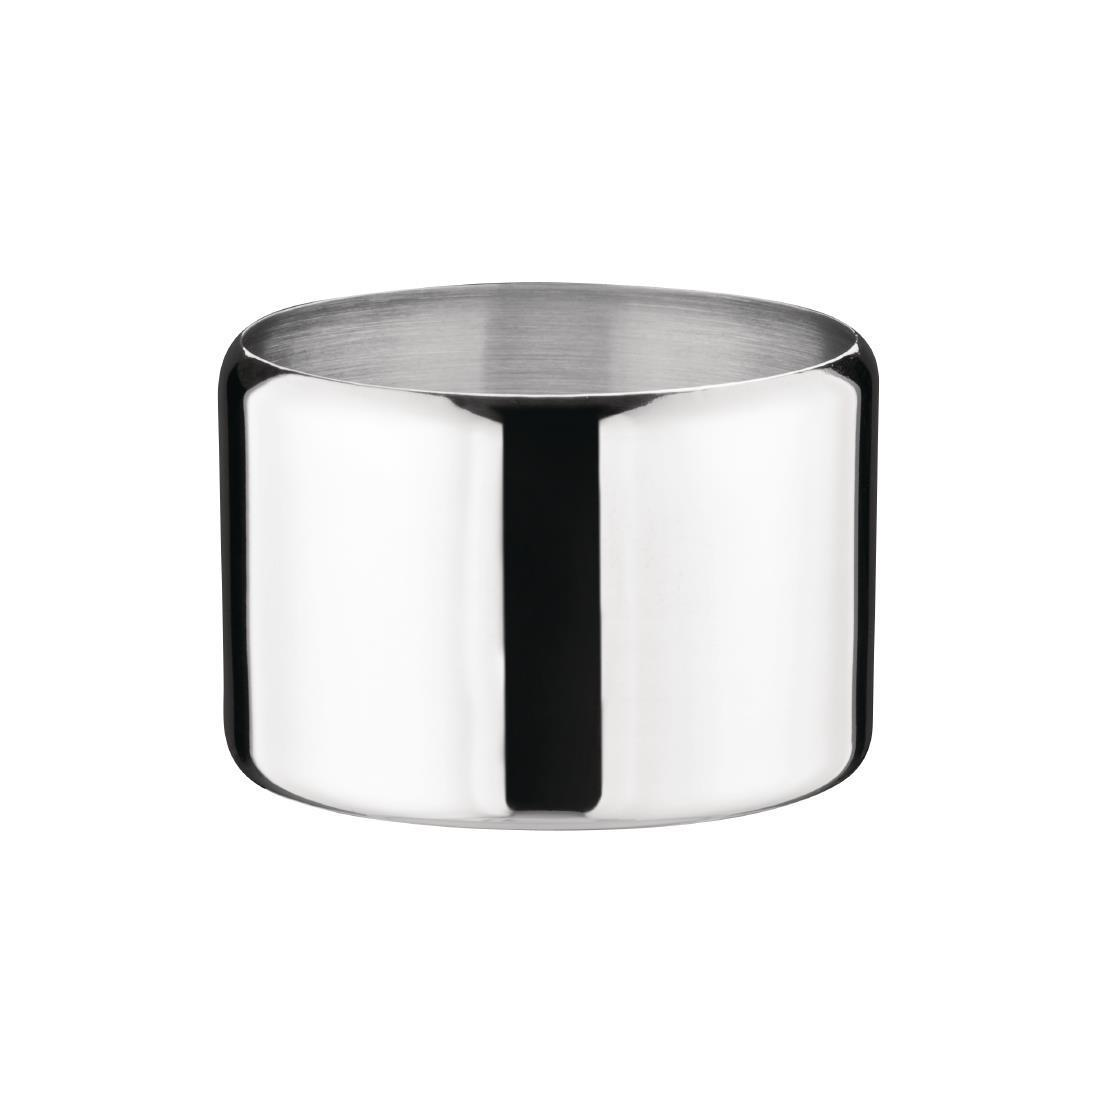 Olympia Concorde Stainless Steel Sugar Bowl 67mm